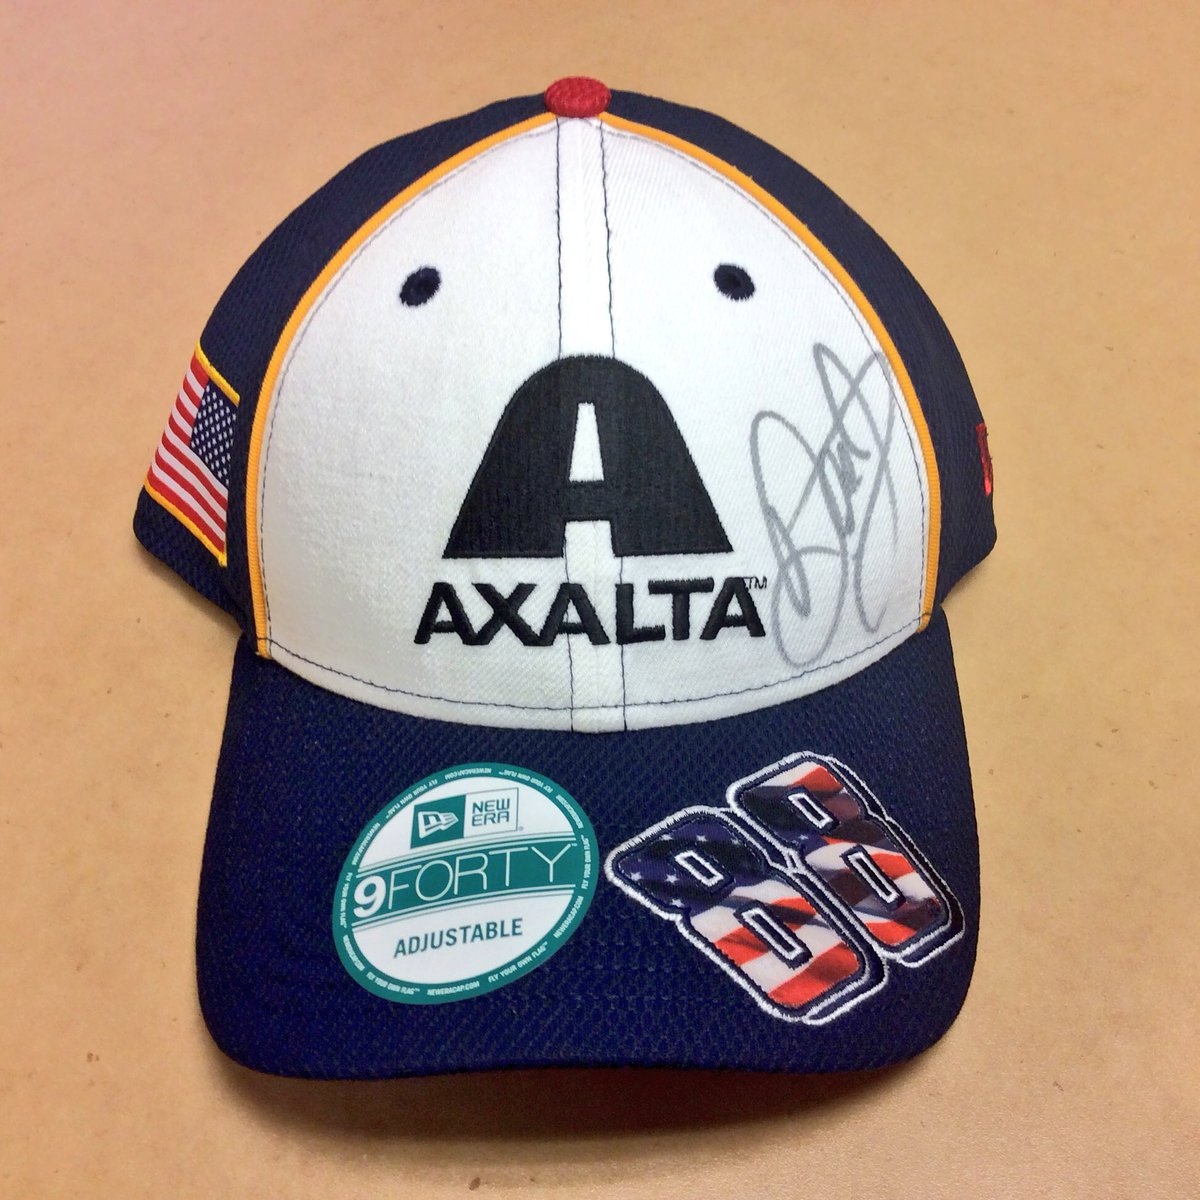 The @AxaltaRacing 8️⃣8️⃣ is back this weekend!  RT by 12 pm ET tomorrow & you could win this hat signed by @DaleJr https://t.co/wtl8o4FYOO